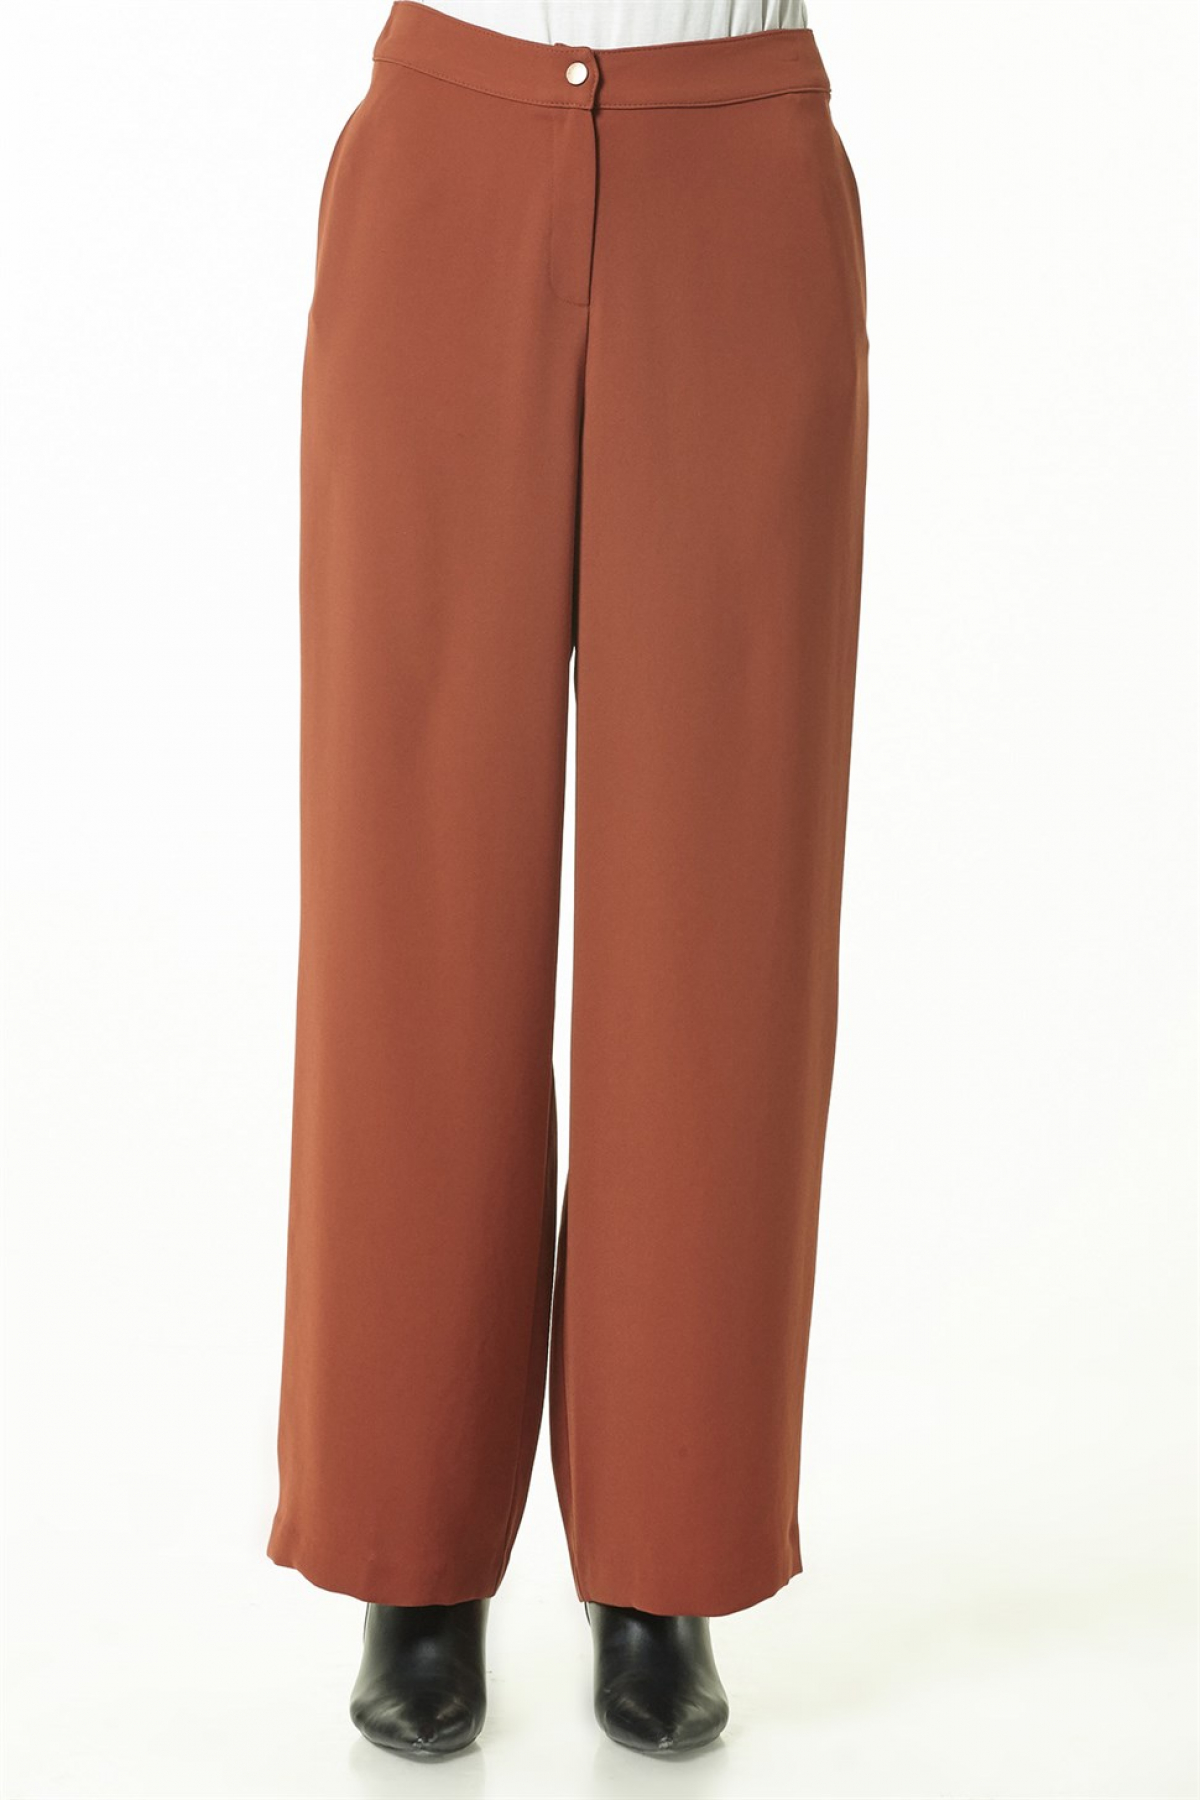 Armine Women's Trousers -  Red